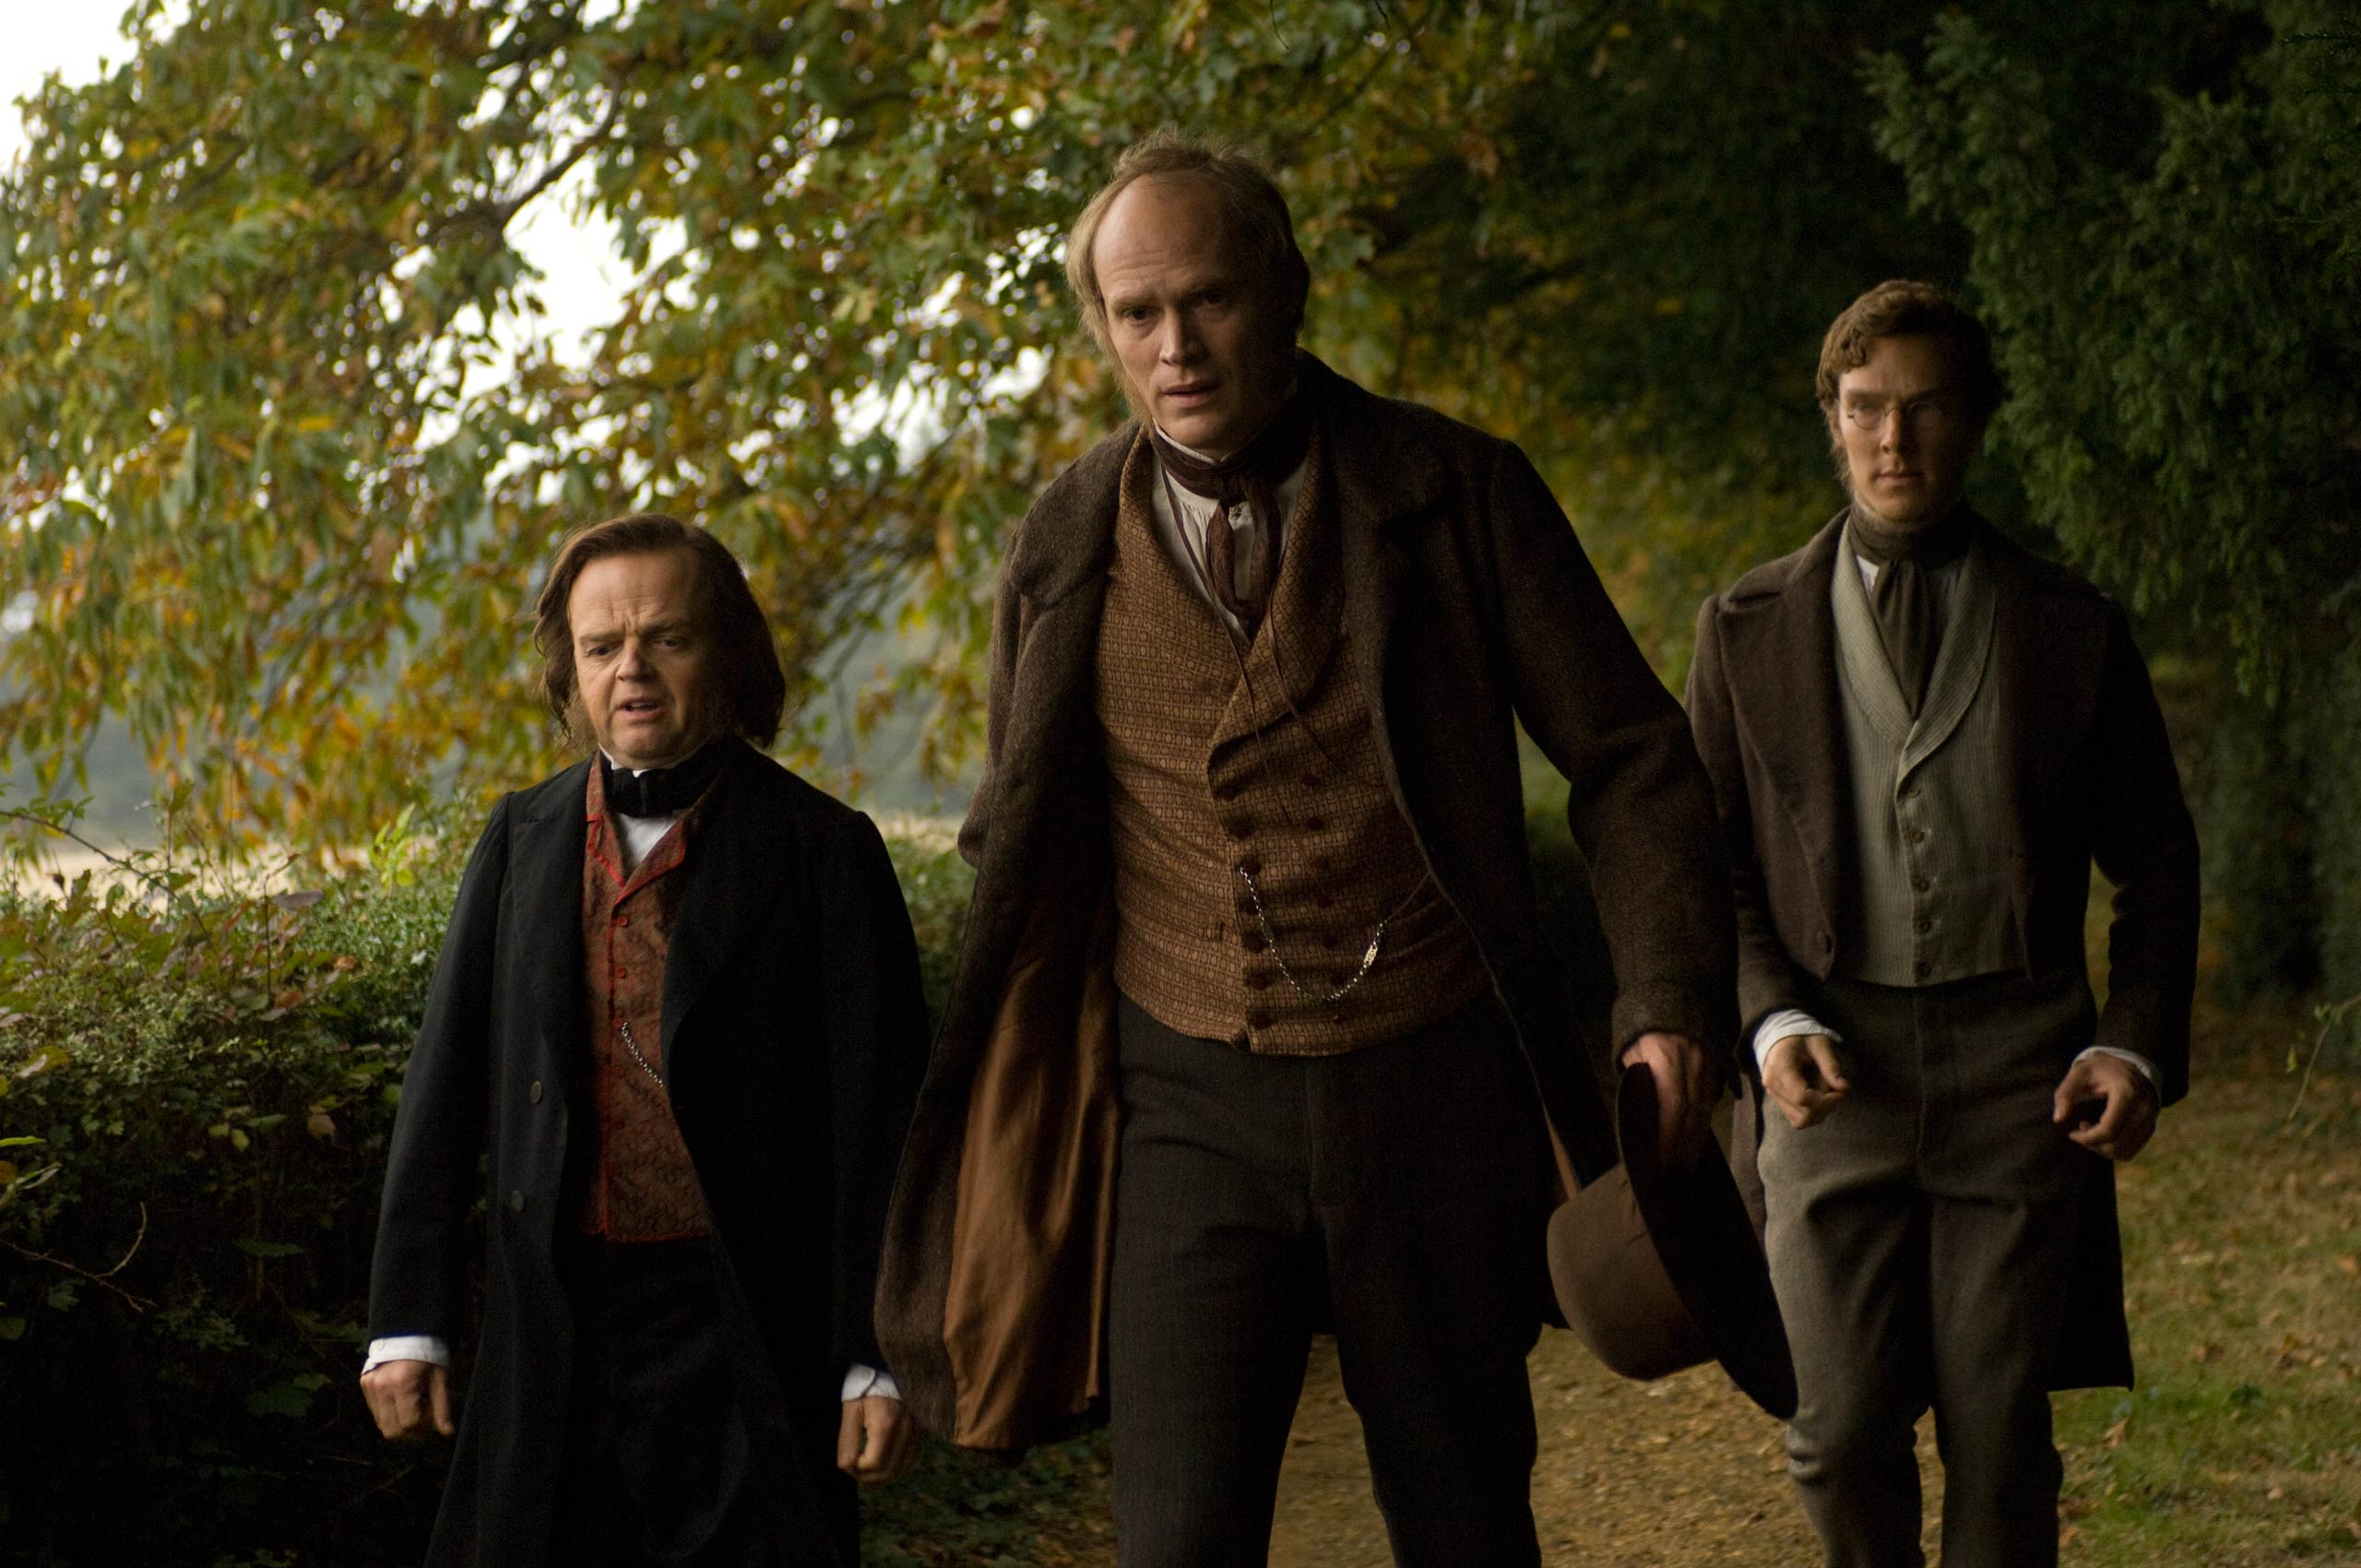 <strong>Creation</strong> Cumberbatch (right) played Joseph Dalton Hooker, an esteemed British botanist and close friend of Charles Darwin (Paul Bettany), in this 2009 British film about Darwin.